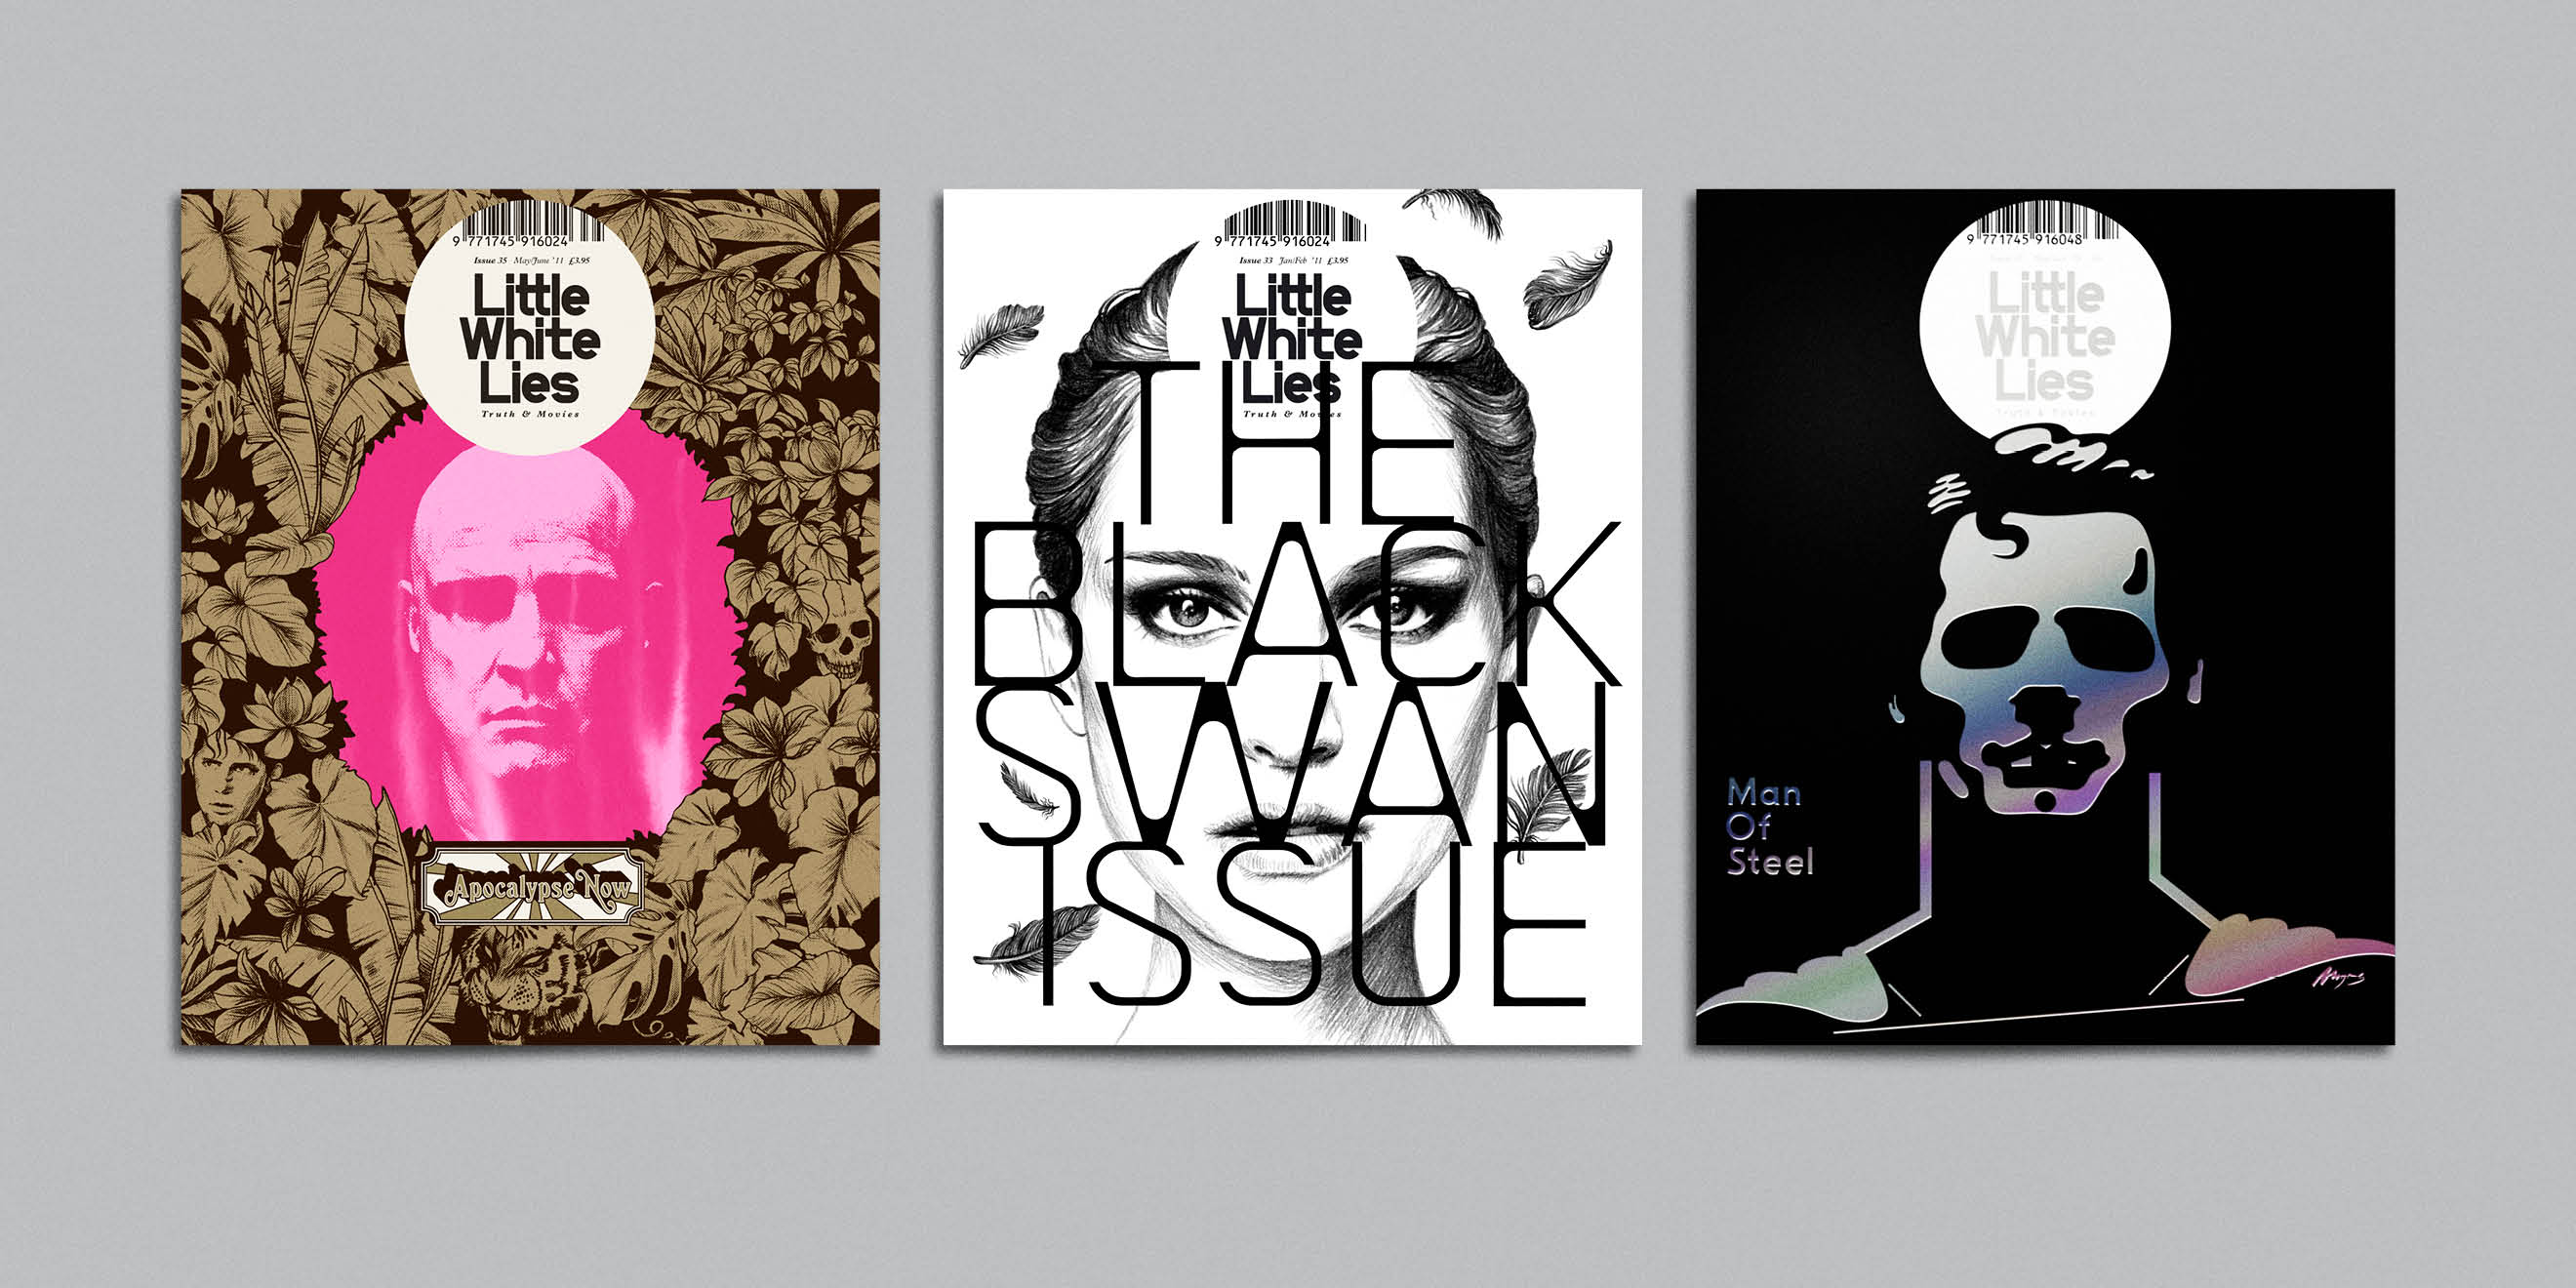 Little White Lies movie magazine illustrated covers - Apocalypse Now, Black Swan, Man of Steel